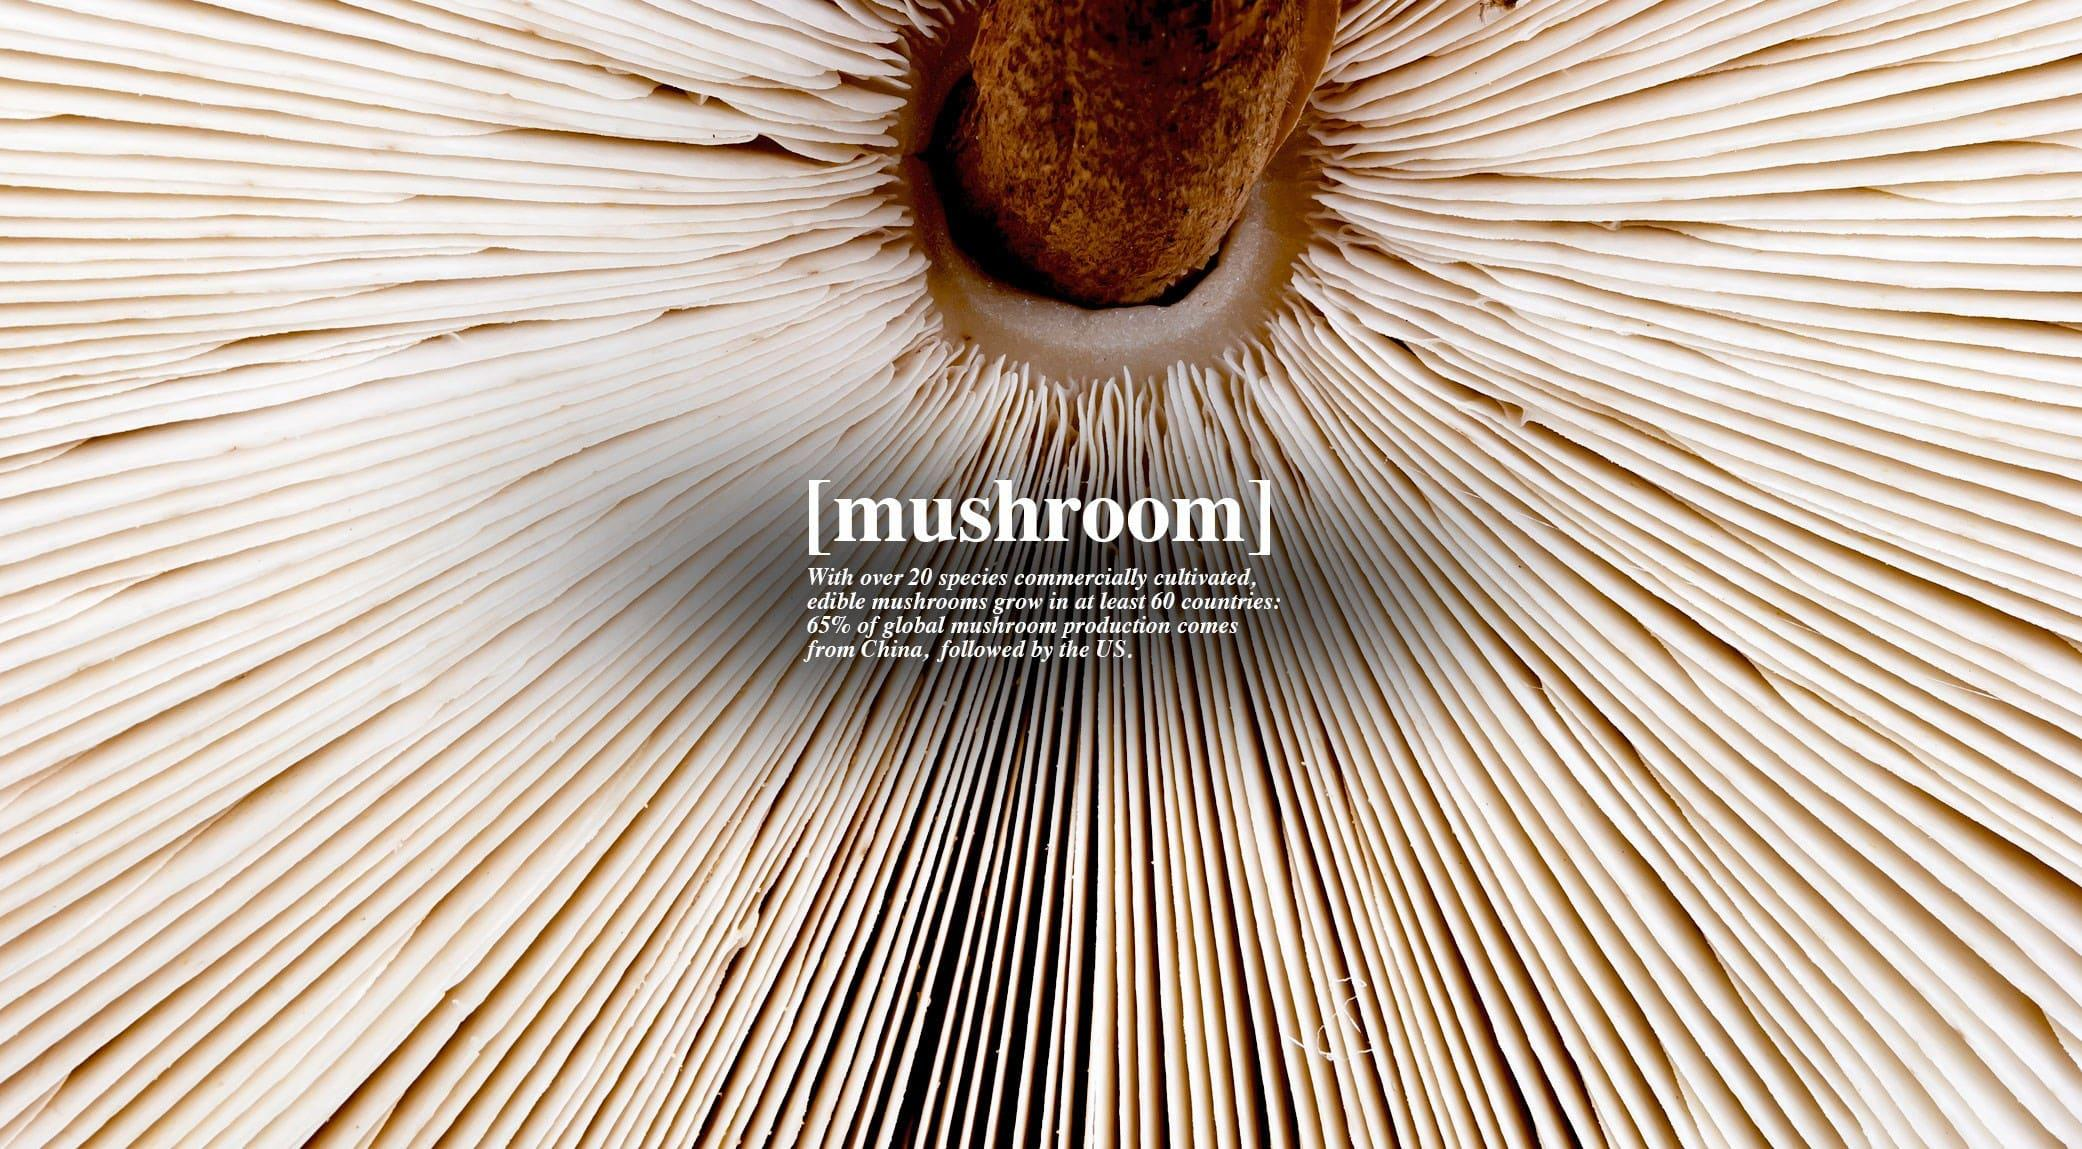 original_007-mushroom-2-finedininglovers.jpg